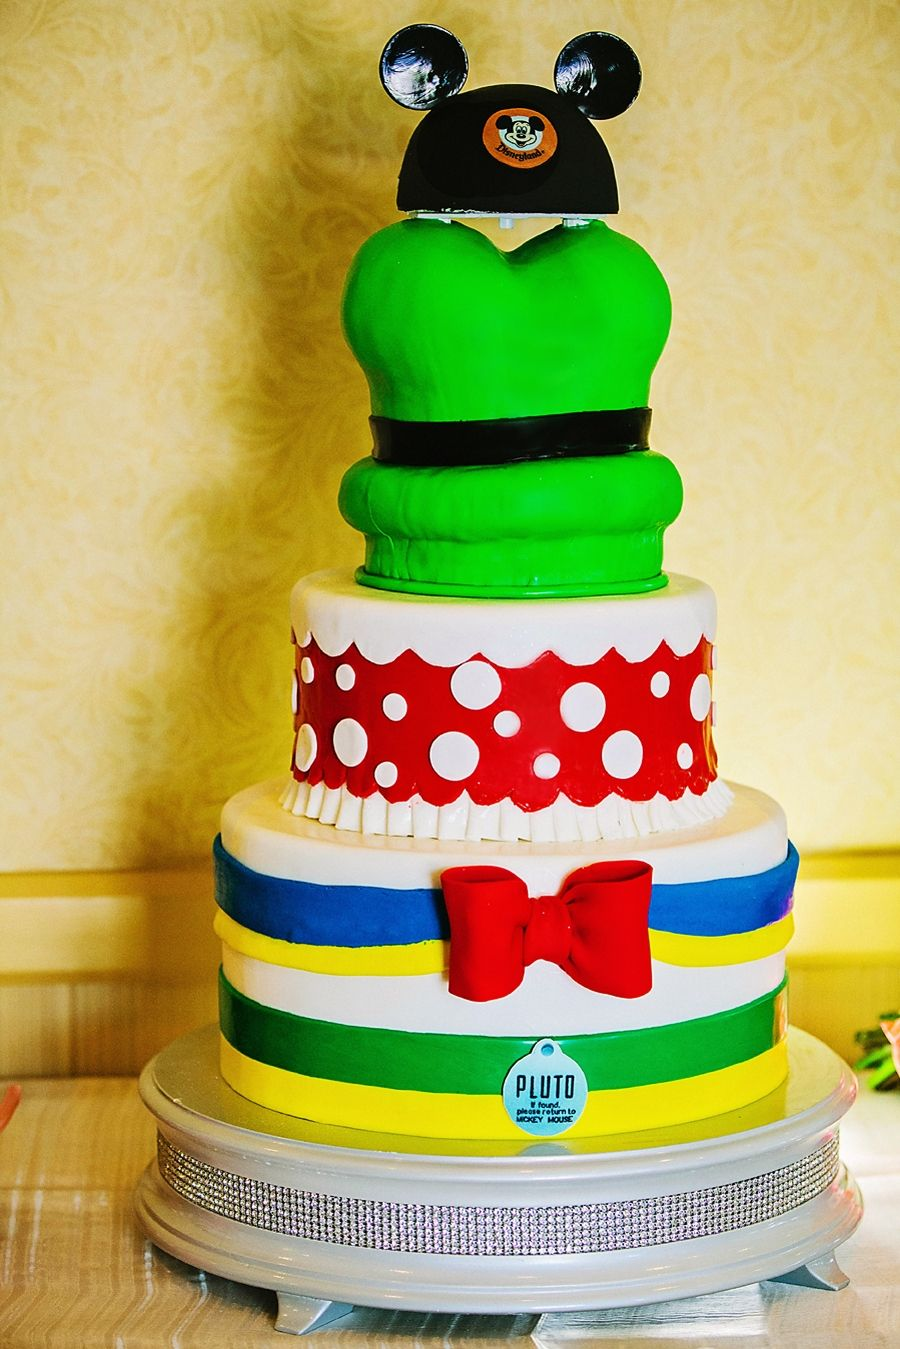 Wedding Cake Wednesday: Disney Characters for the fun, playful ...